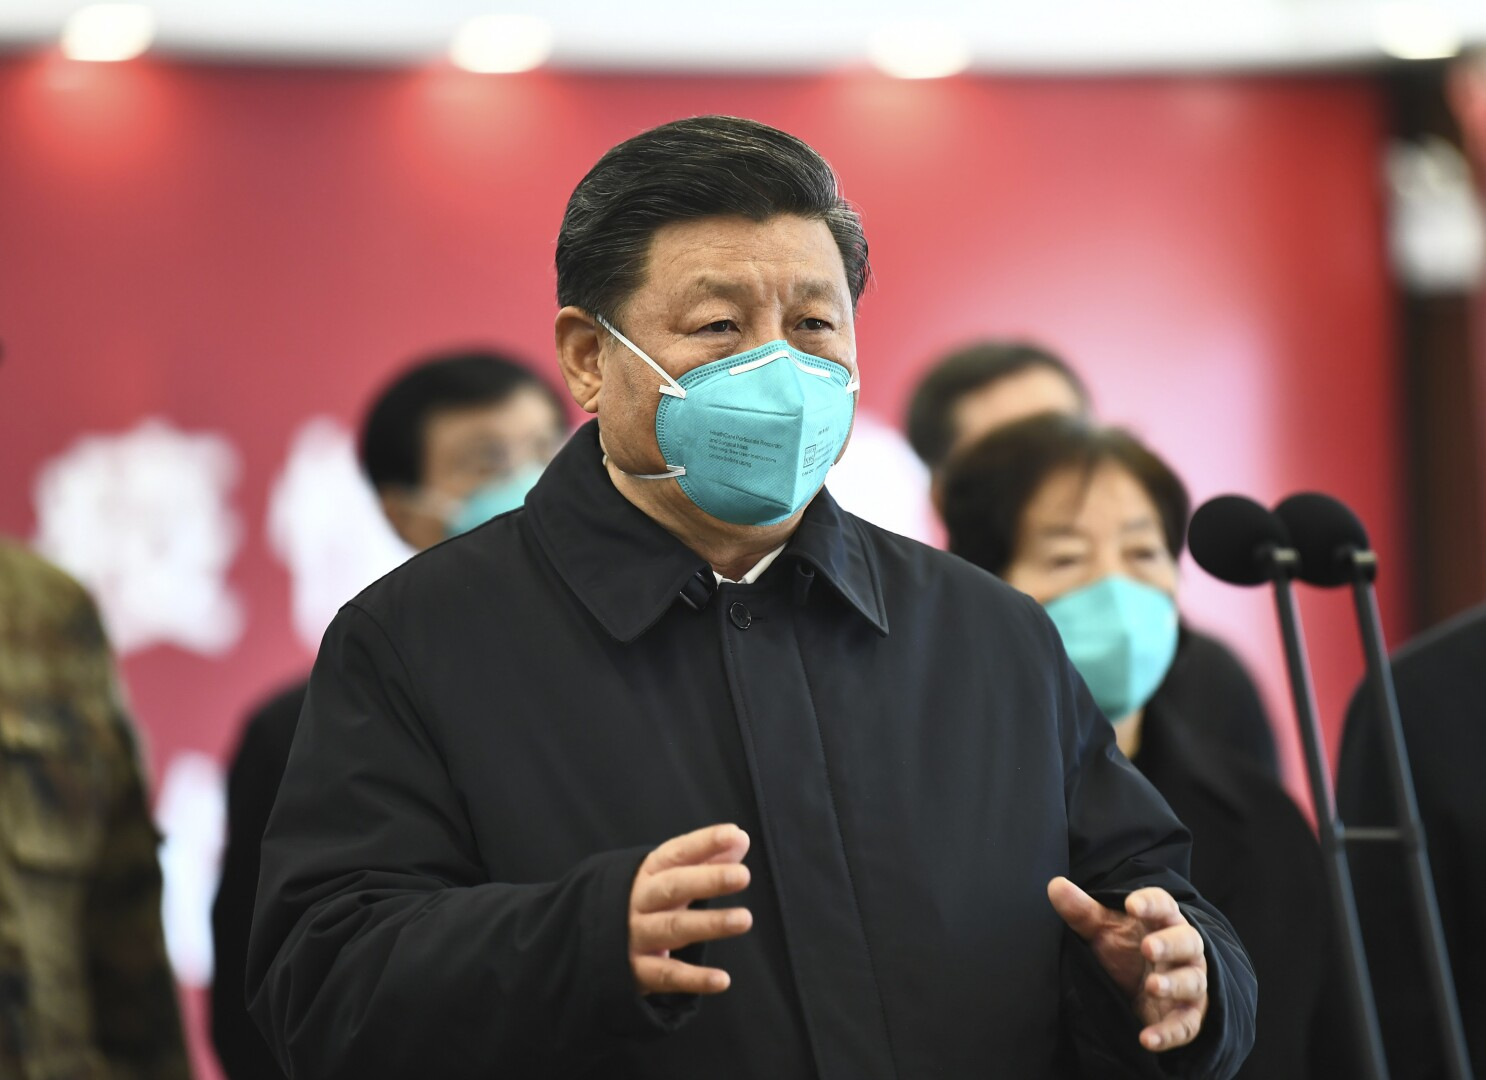 Xi Jinping Visits Wuhan As China Declares Success In Fight Against Coronavirus Los Angeles Times